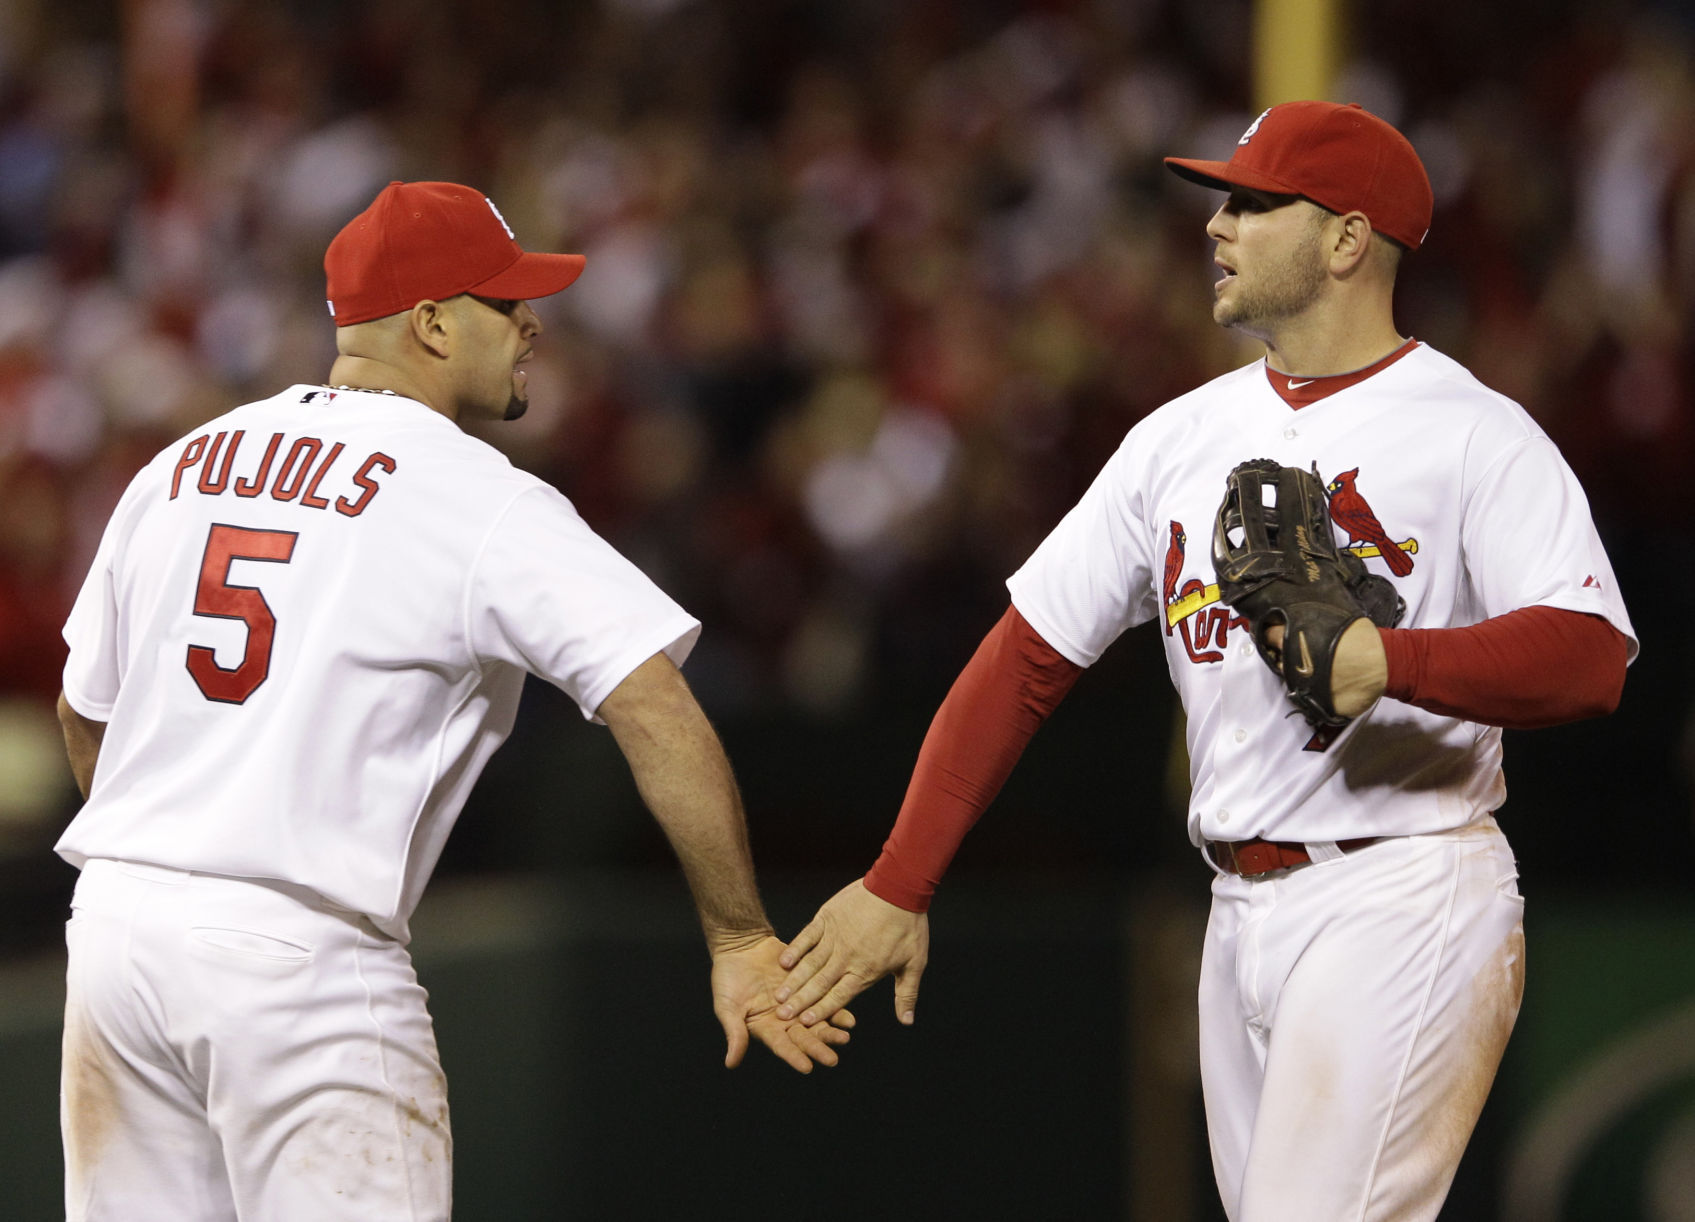 Preview: Cardinals at Brewers - Aug. 3